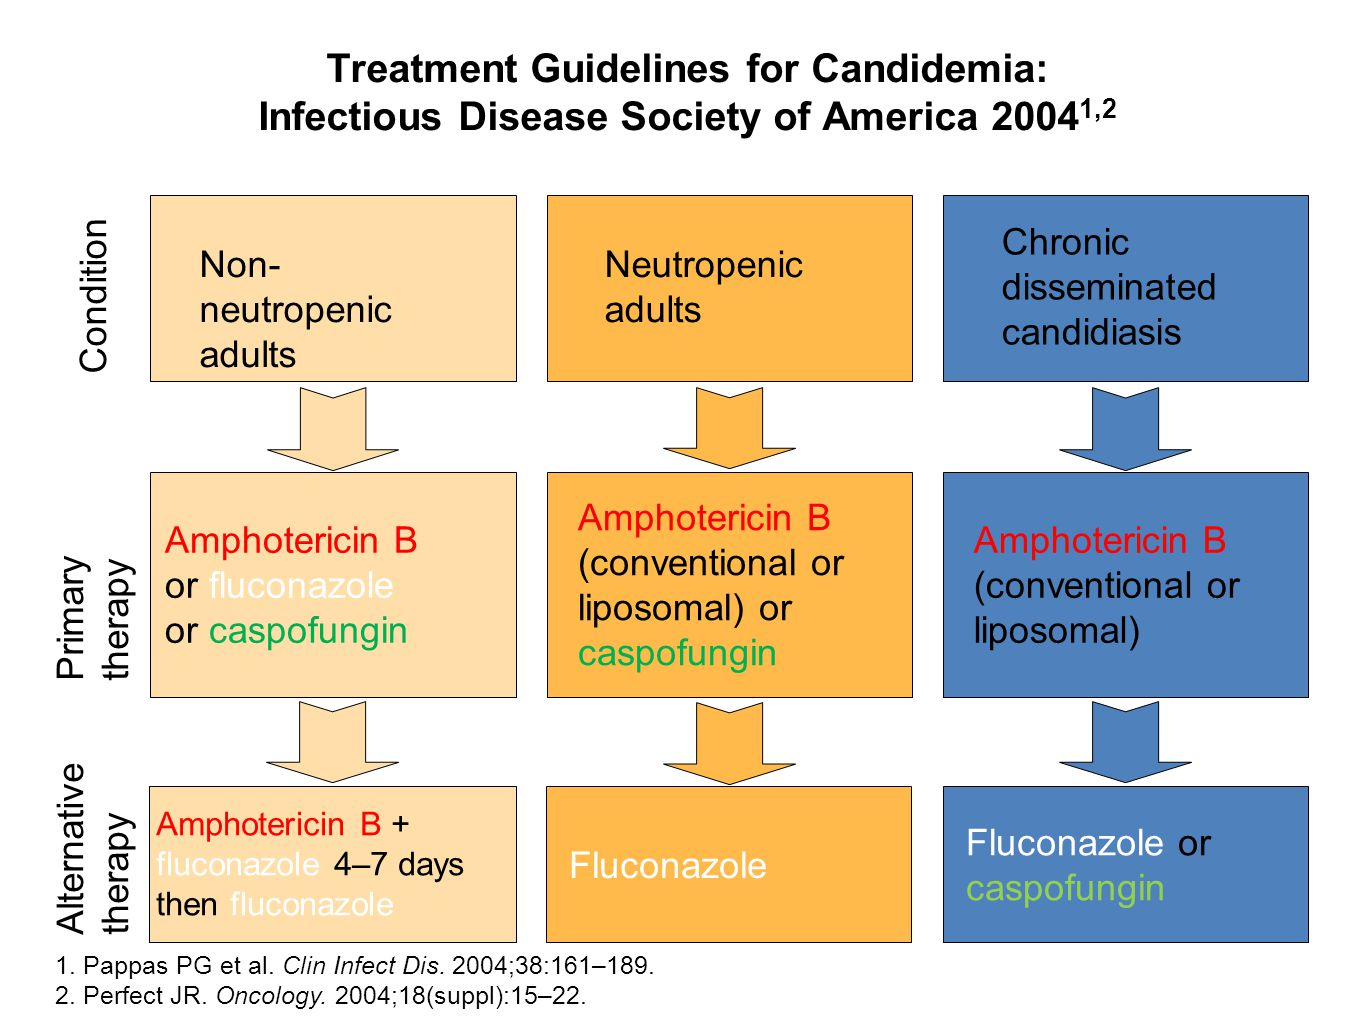 Treatment Guidelines for Candidemia: Infectious Disease Society of America 20041,2